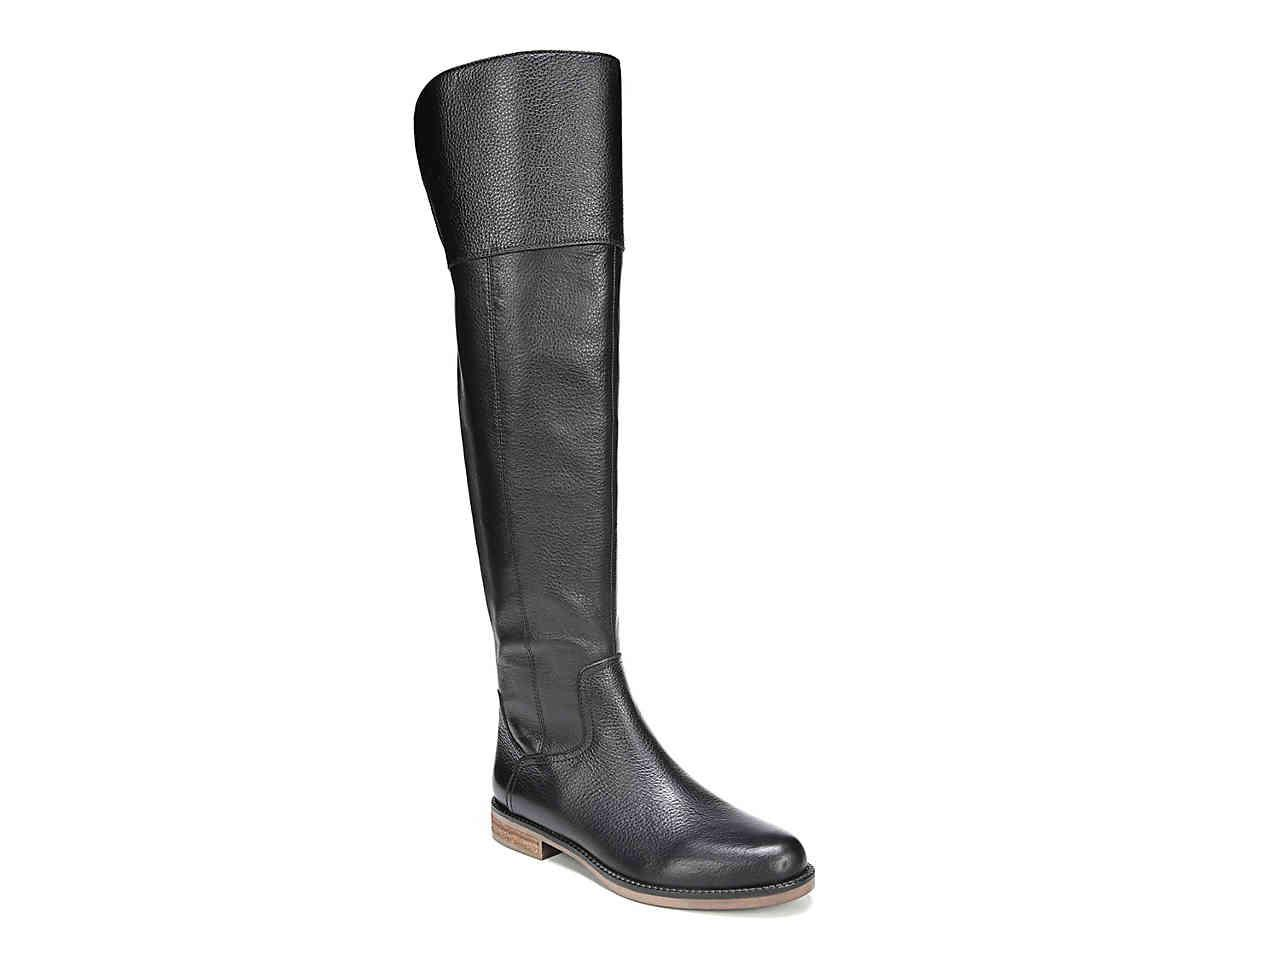 b4f69d68317 Lyst - Franco Sarto Carlisle Over The Knee Boot in Black - Save 46%